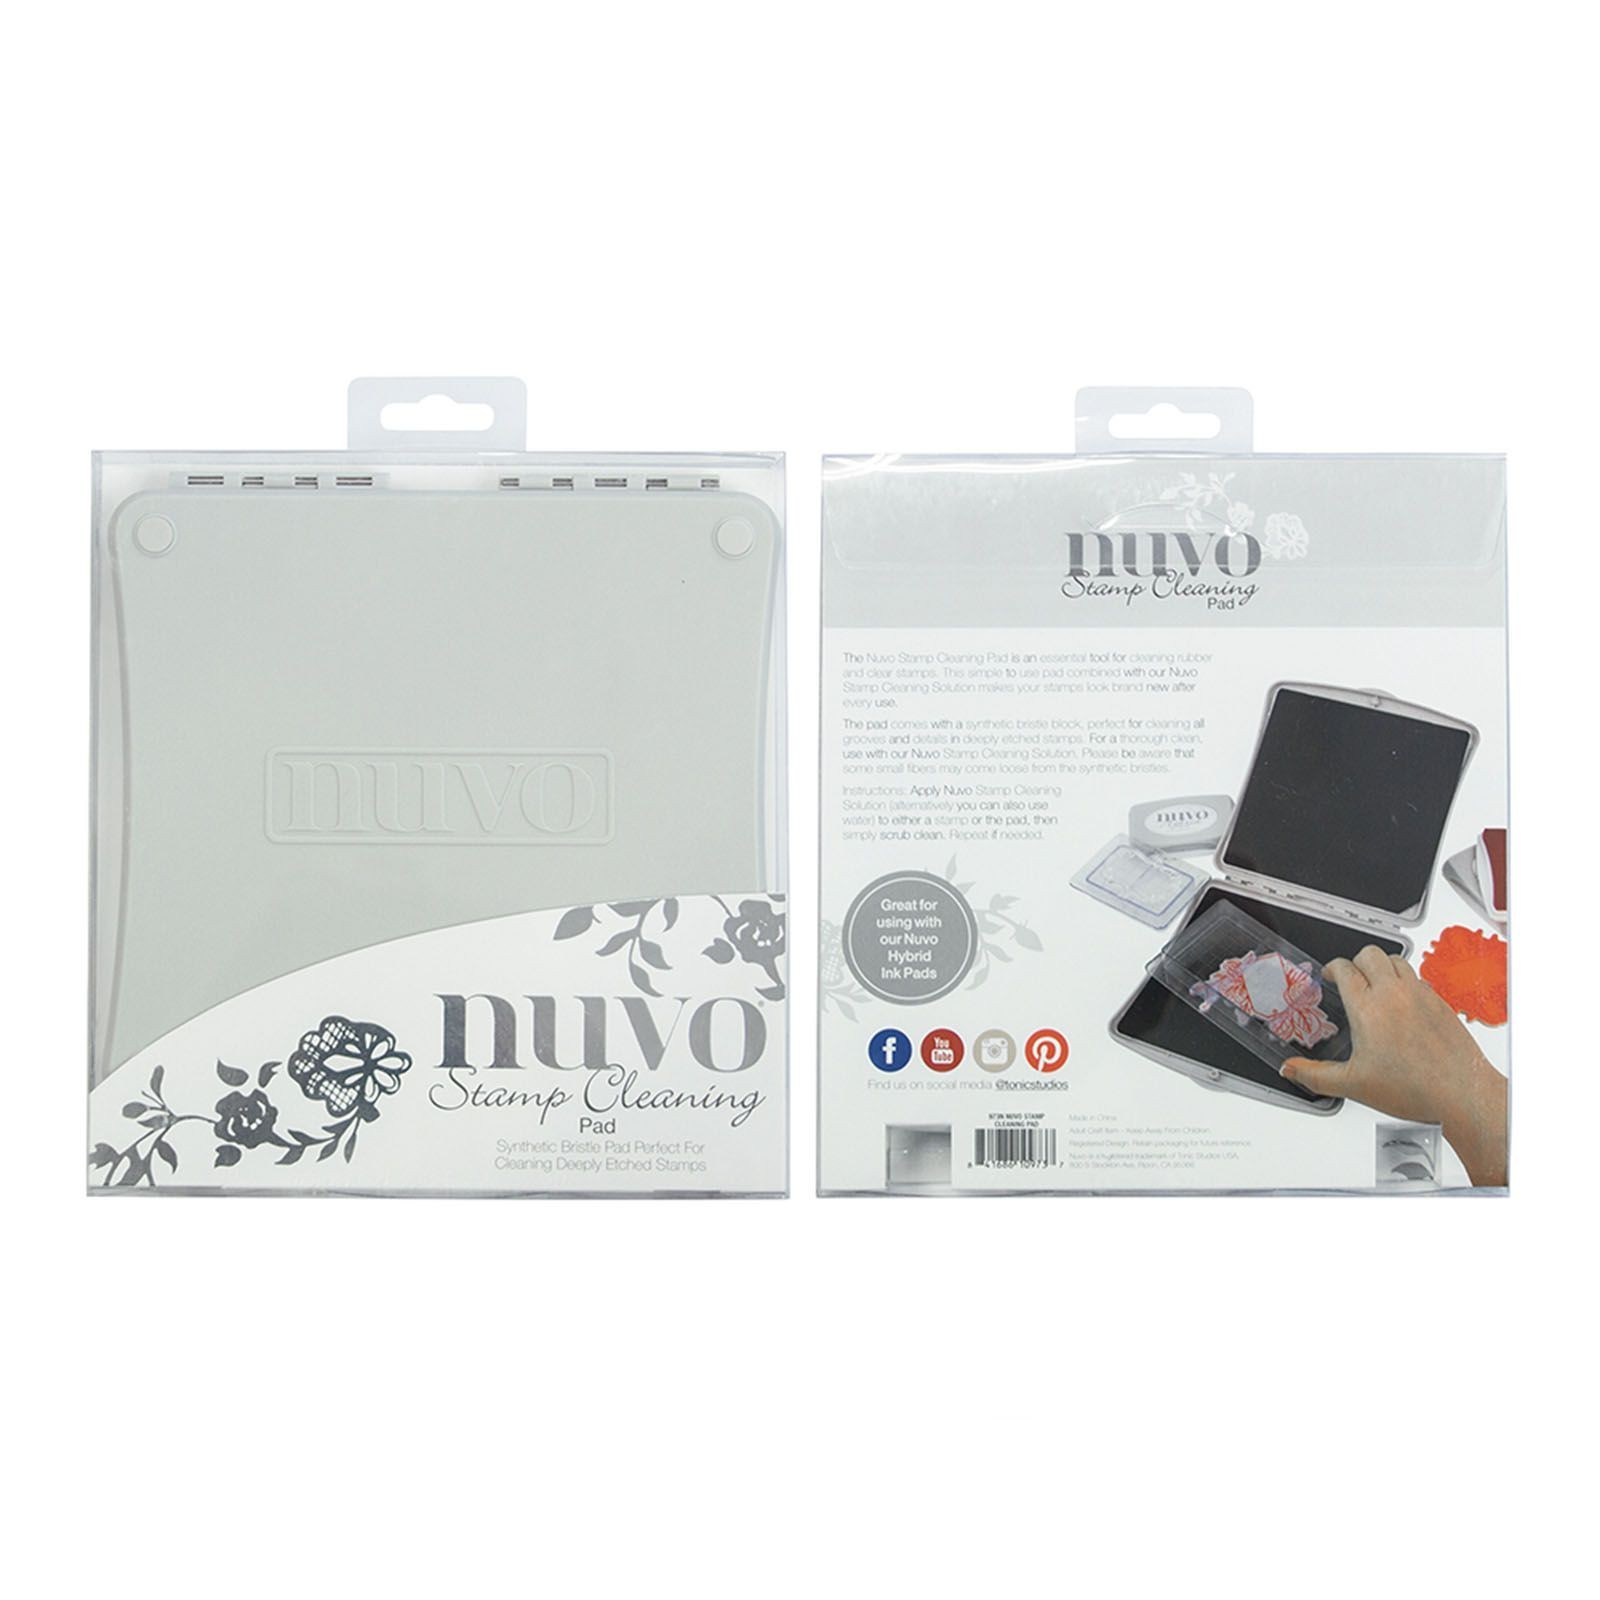 stamp-cleaning-pad-nuvo